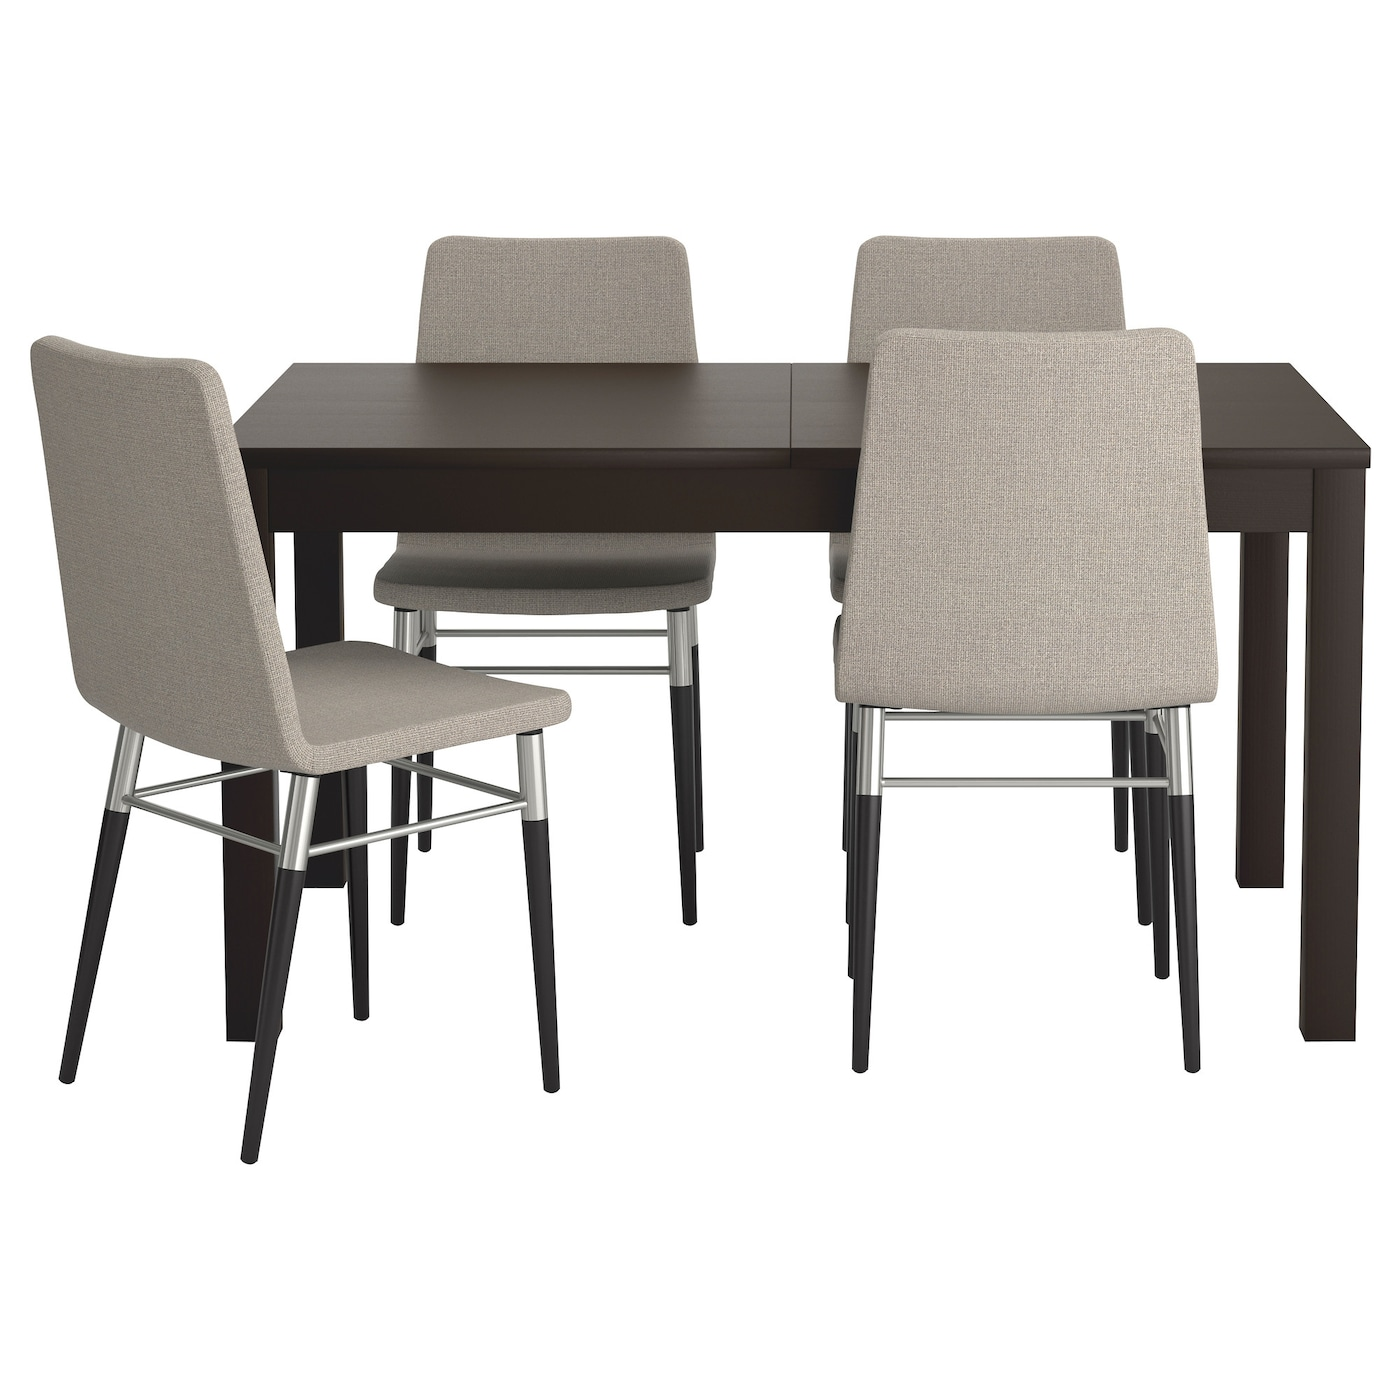 black furniture ikea. IKEA PREBENBJURSTA Table And 4 Chairs The Clearlacquered Surface Is Easy To Black Furniture Ikea X